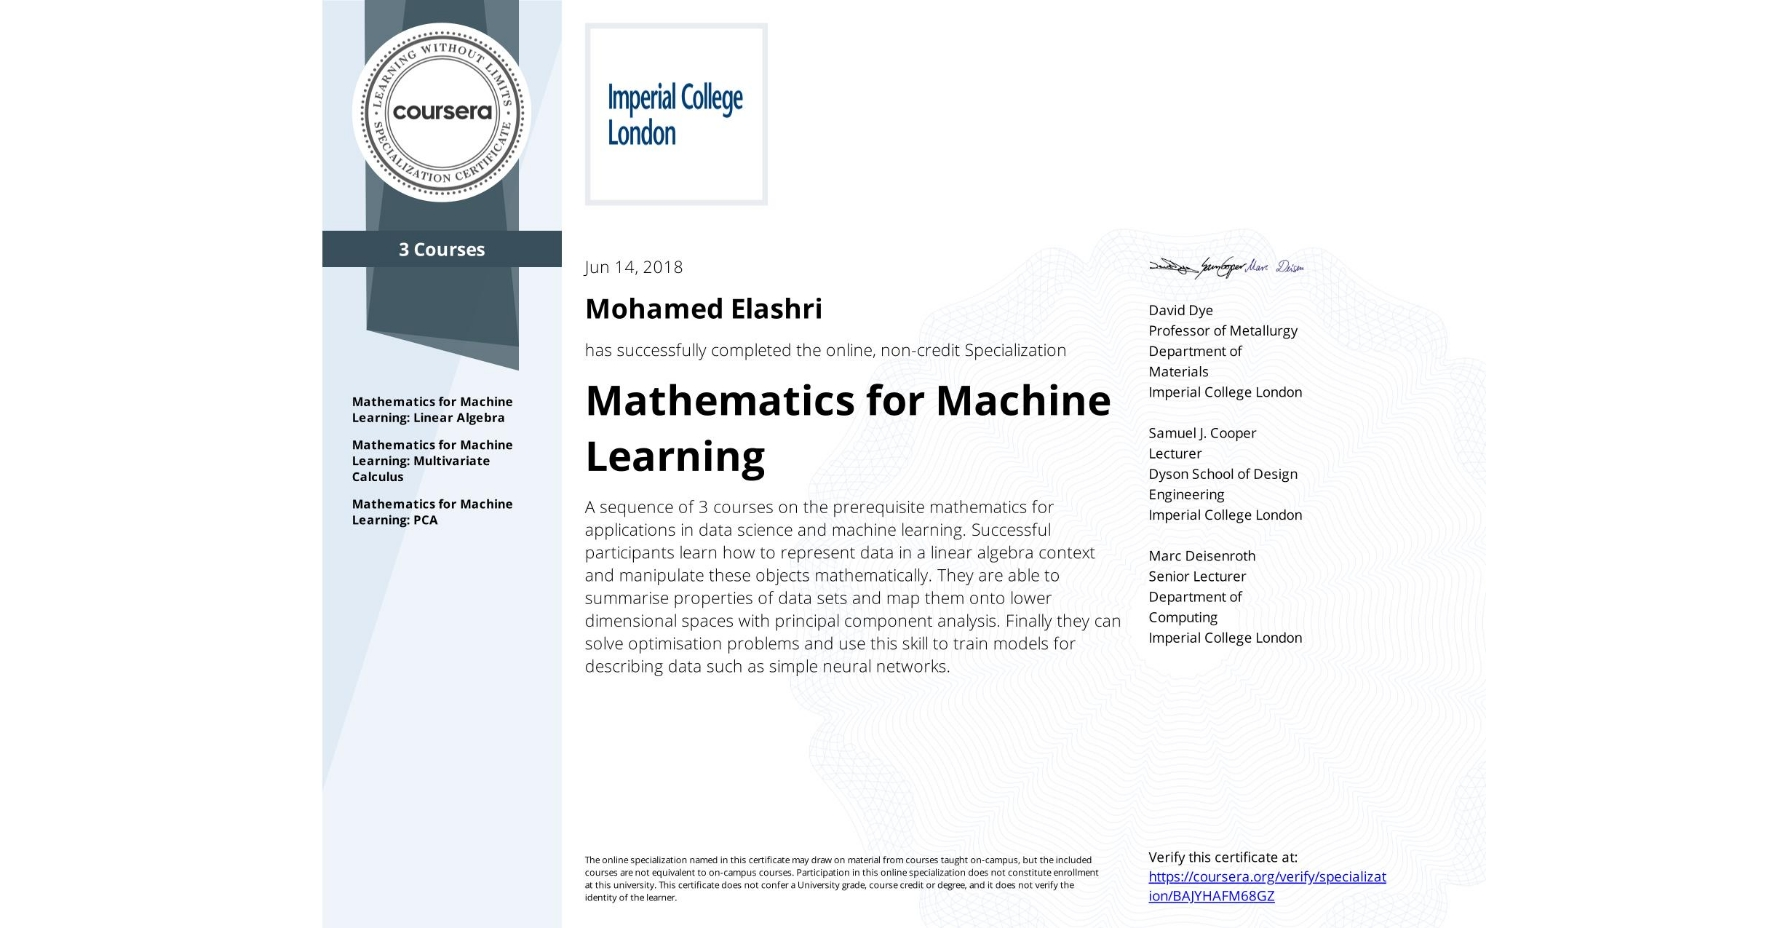 View certificate for Mohamed Elashri, Mathematics for Machine Learning, offered through Coursera. A sequence of 3 courses on the prerequisite mathematics for applications in data science and machine learning.   Successful participants learn how to represent data in a linear algebra context and manipulate these objects mathematically. They are able to summarise properties of data sets and map them onto lower dimensional spaces with principal component analysis. Finally they can solve optimisation problems and use this skill to train models for describing data such as simple neural networks.